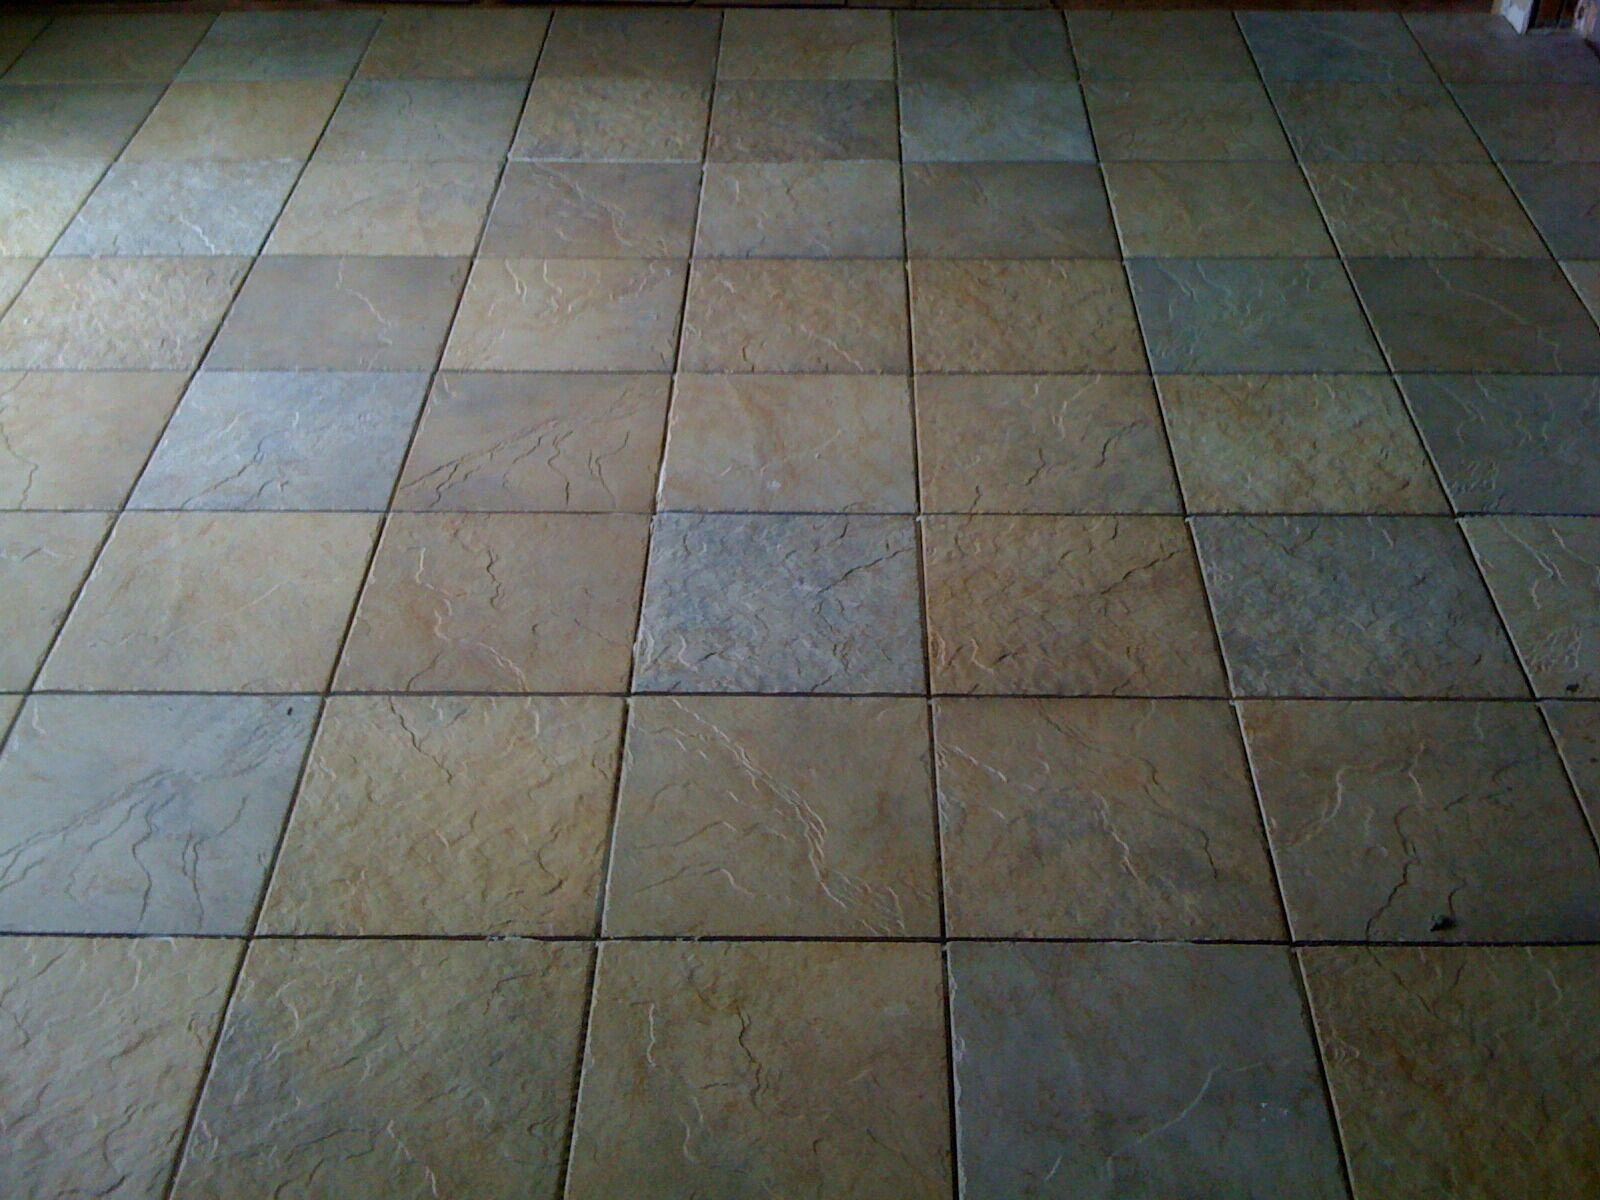 Newly installed tile flooring